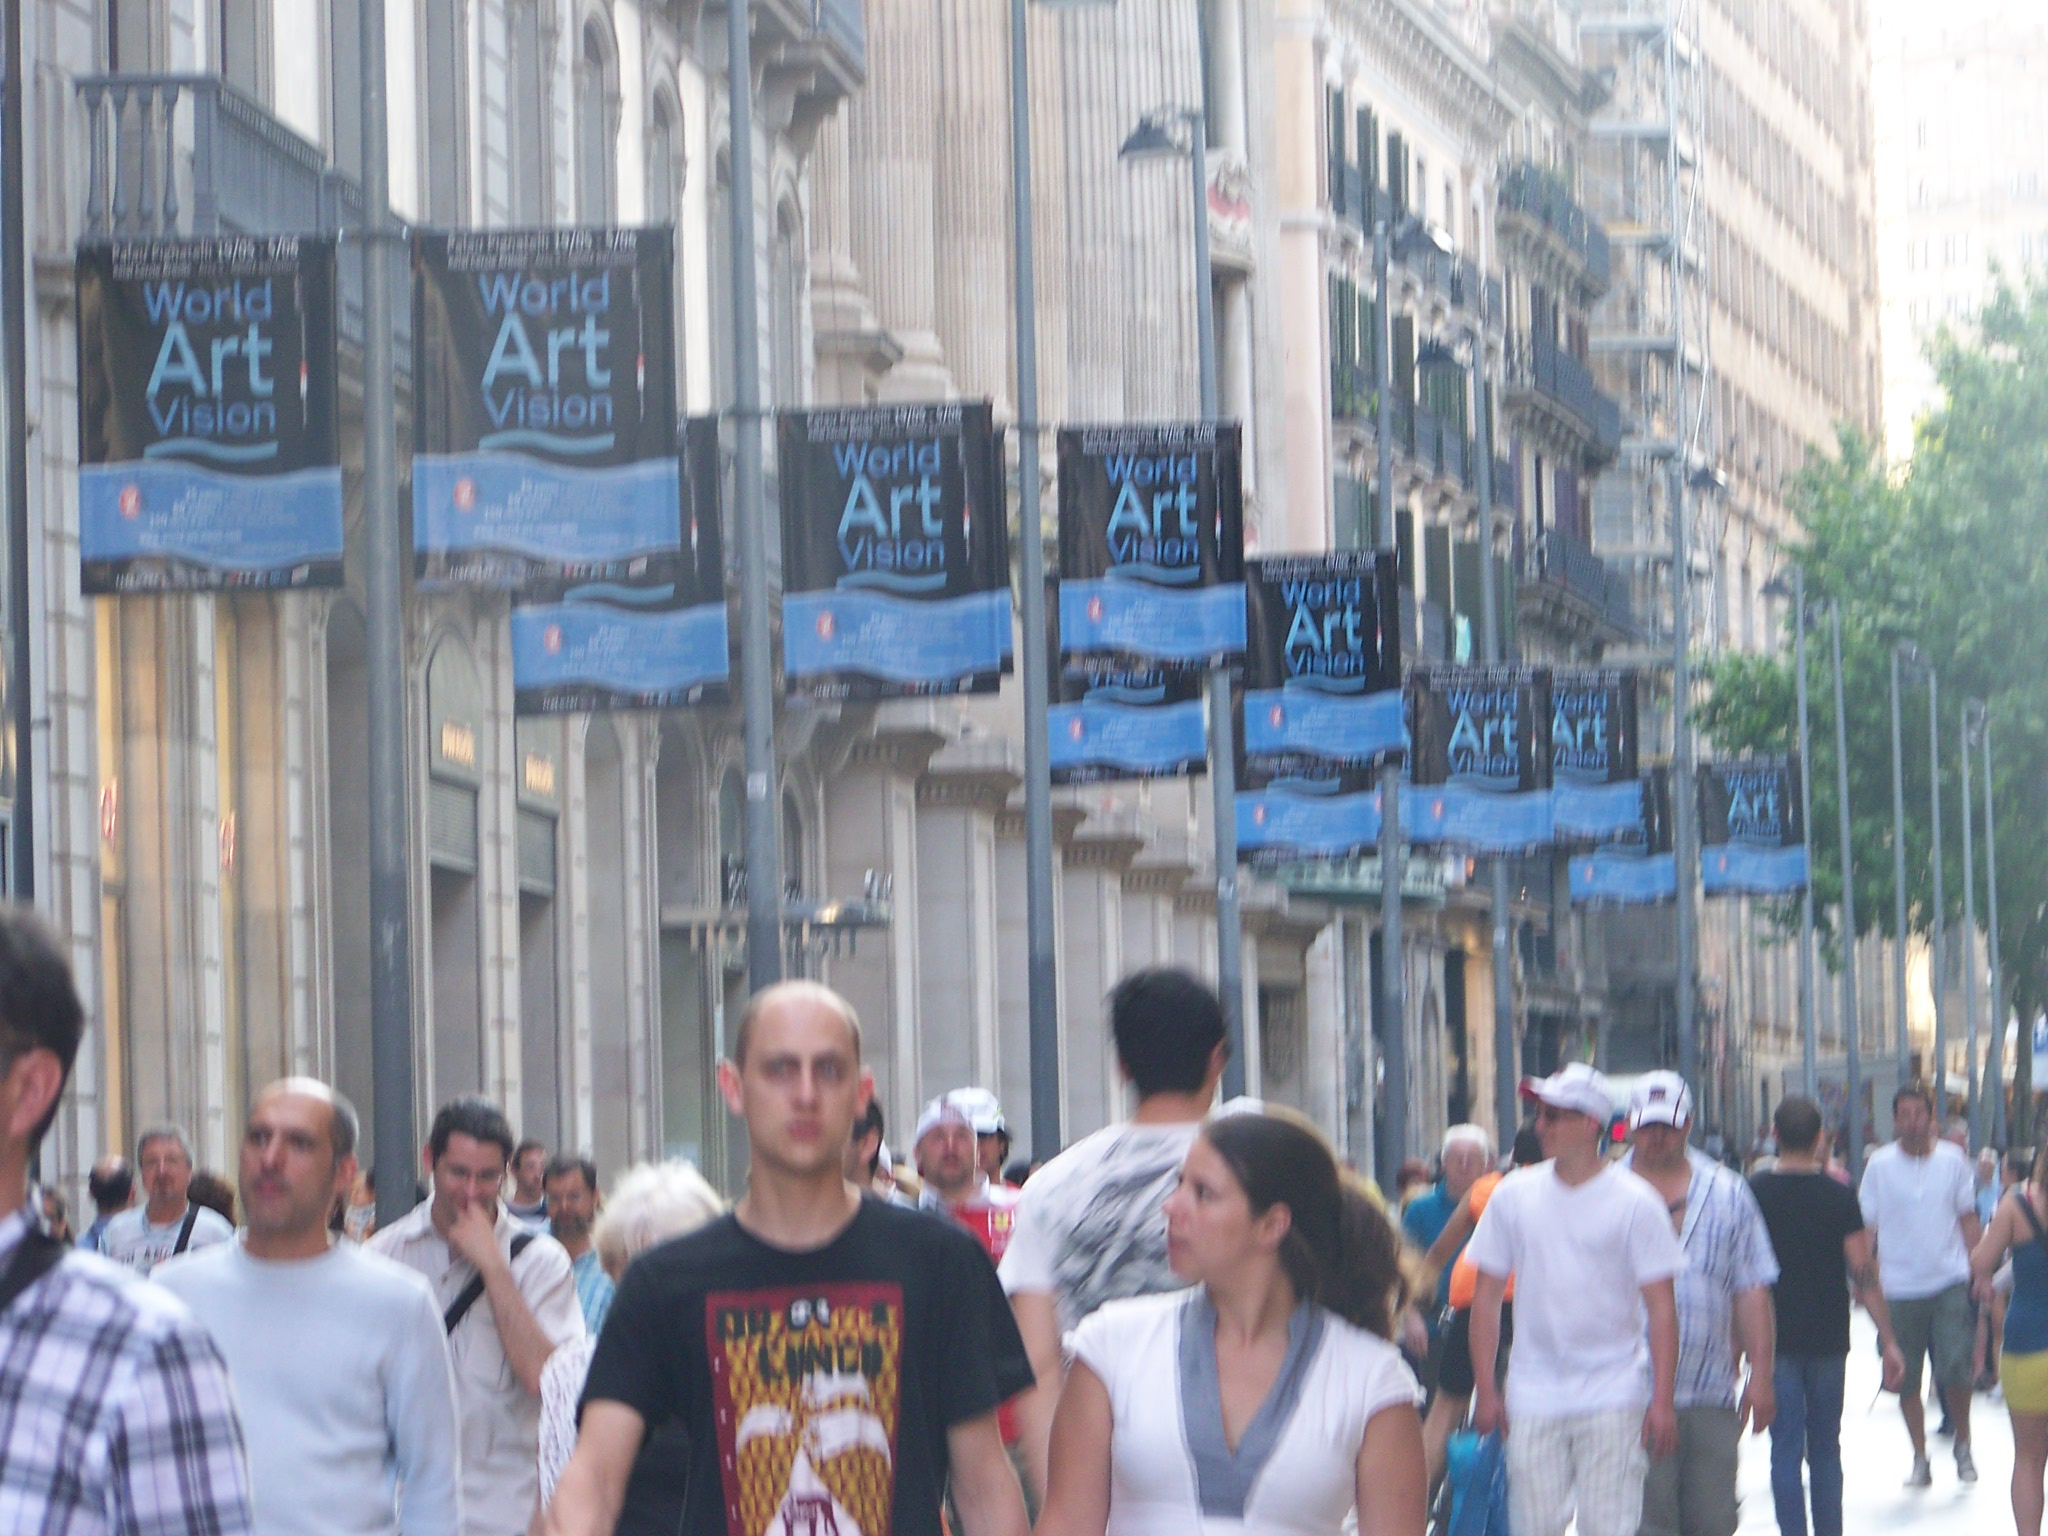 2008 World Art Vision_Barcelona Spain